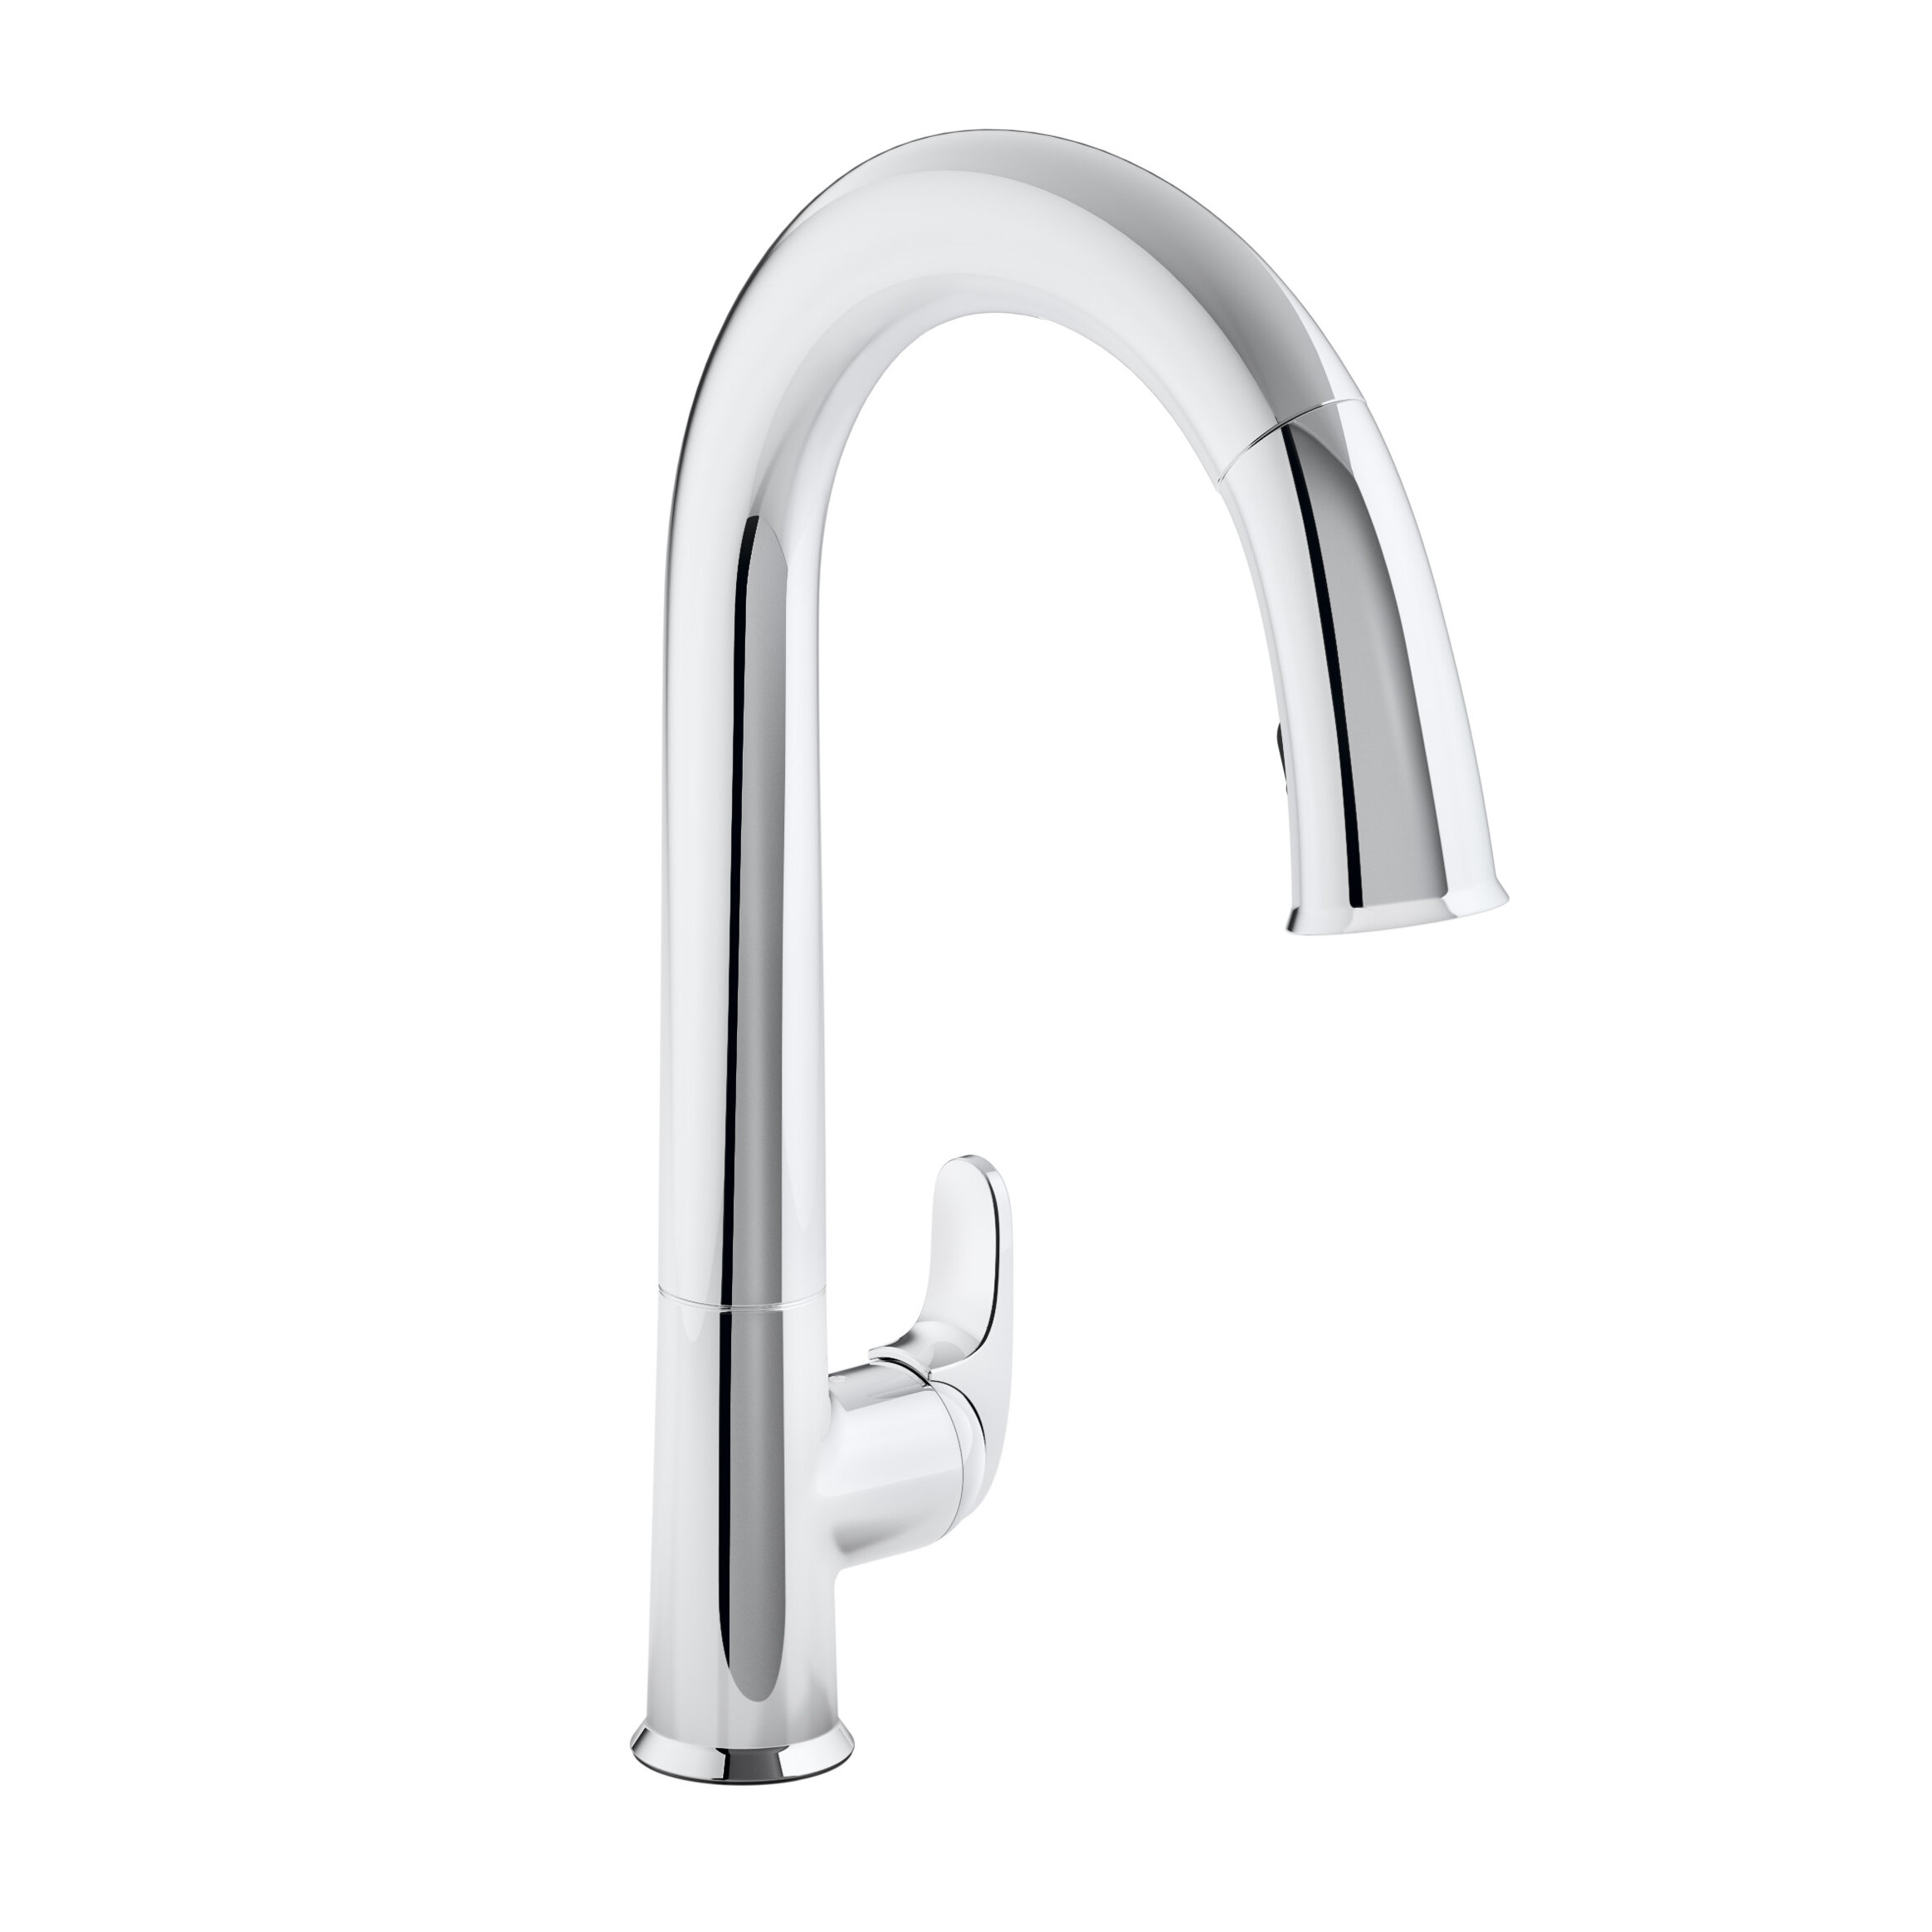 light faucets faucet photos com full best led touchless touch with delta htsrec elegant of waterfall kitchen size luxury water